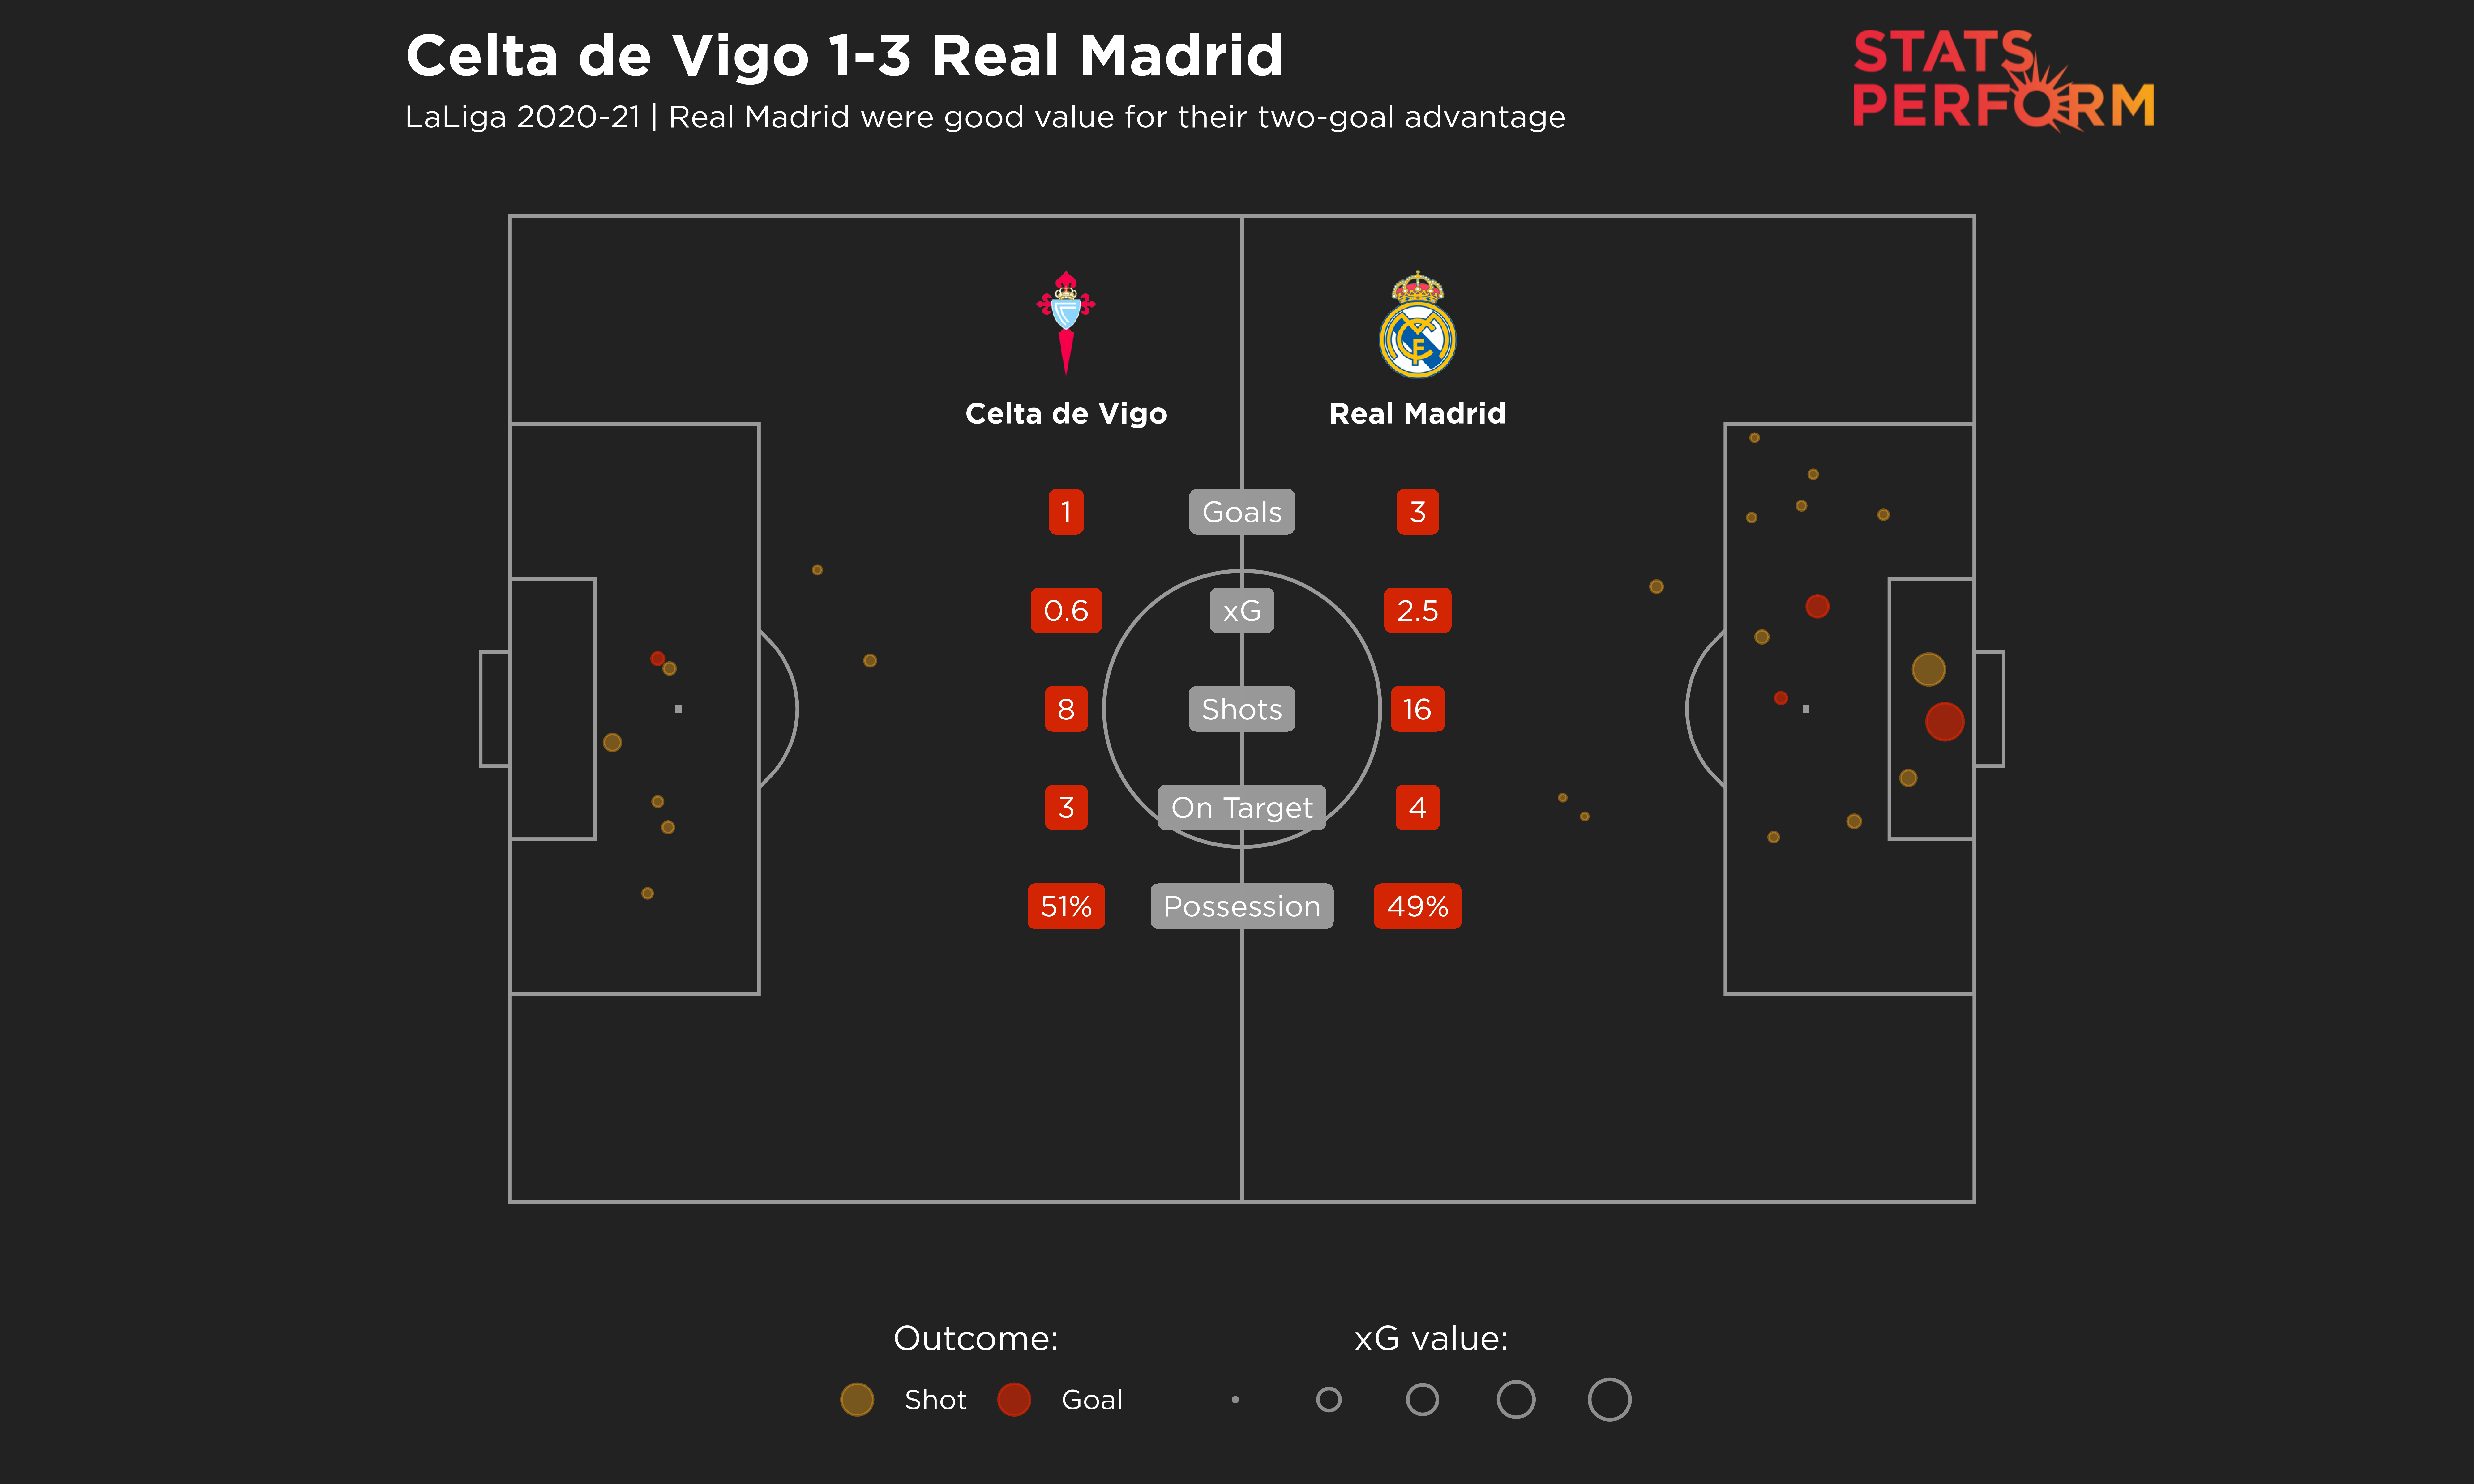 Real Madrid were good value for their two-goal advantage